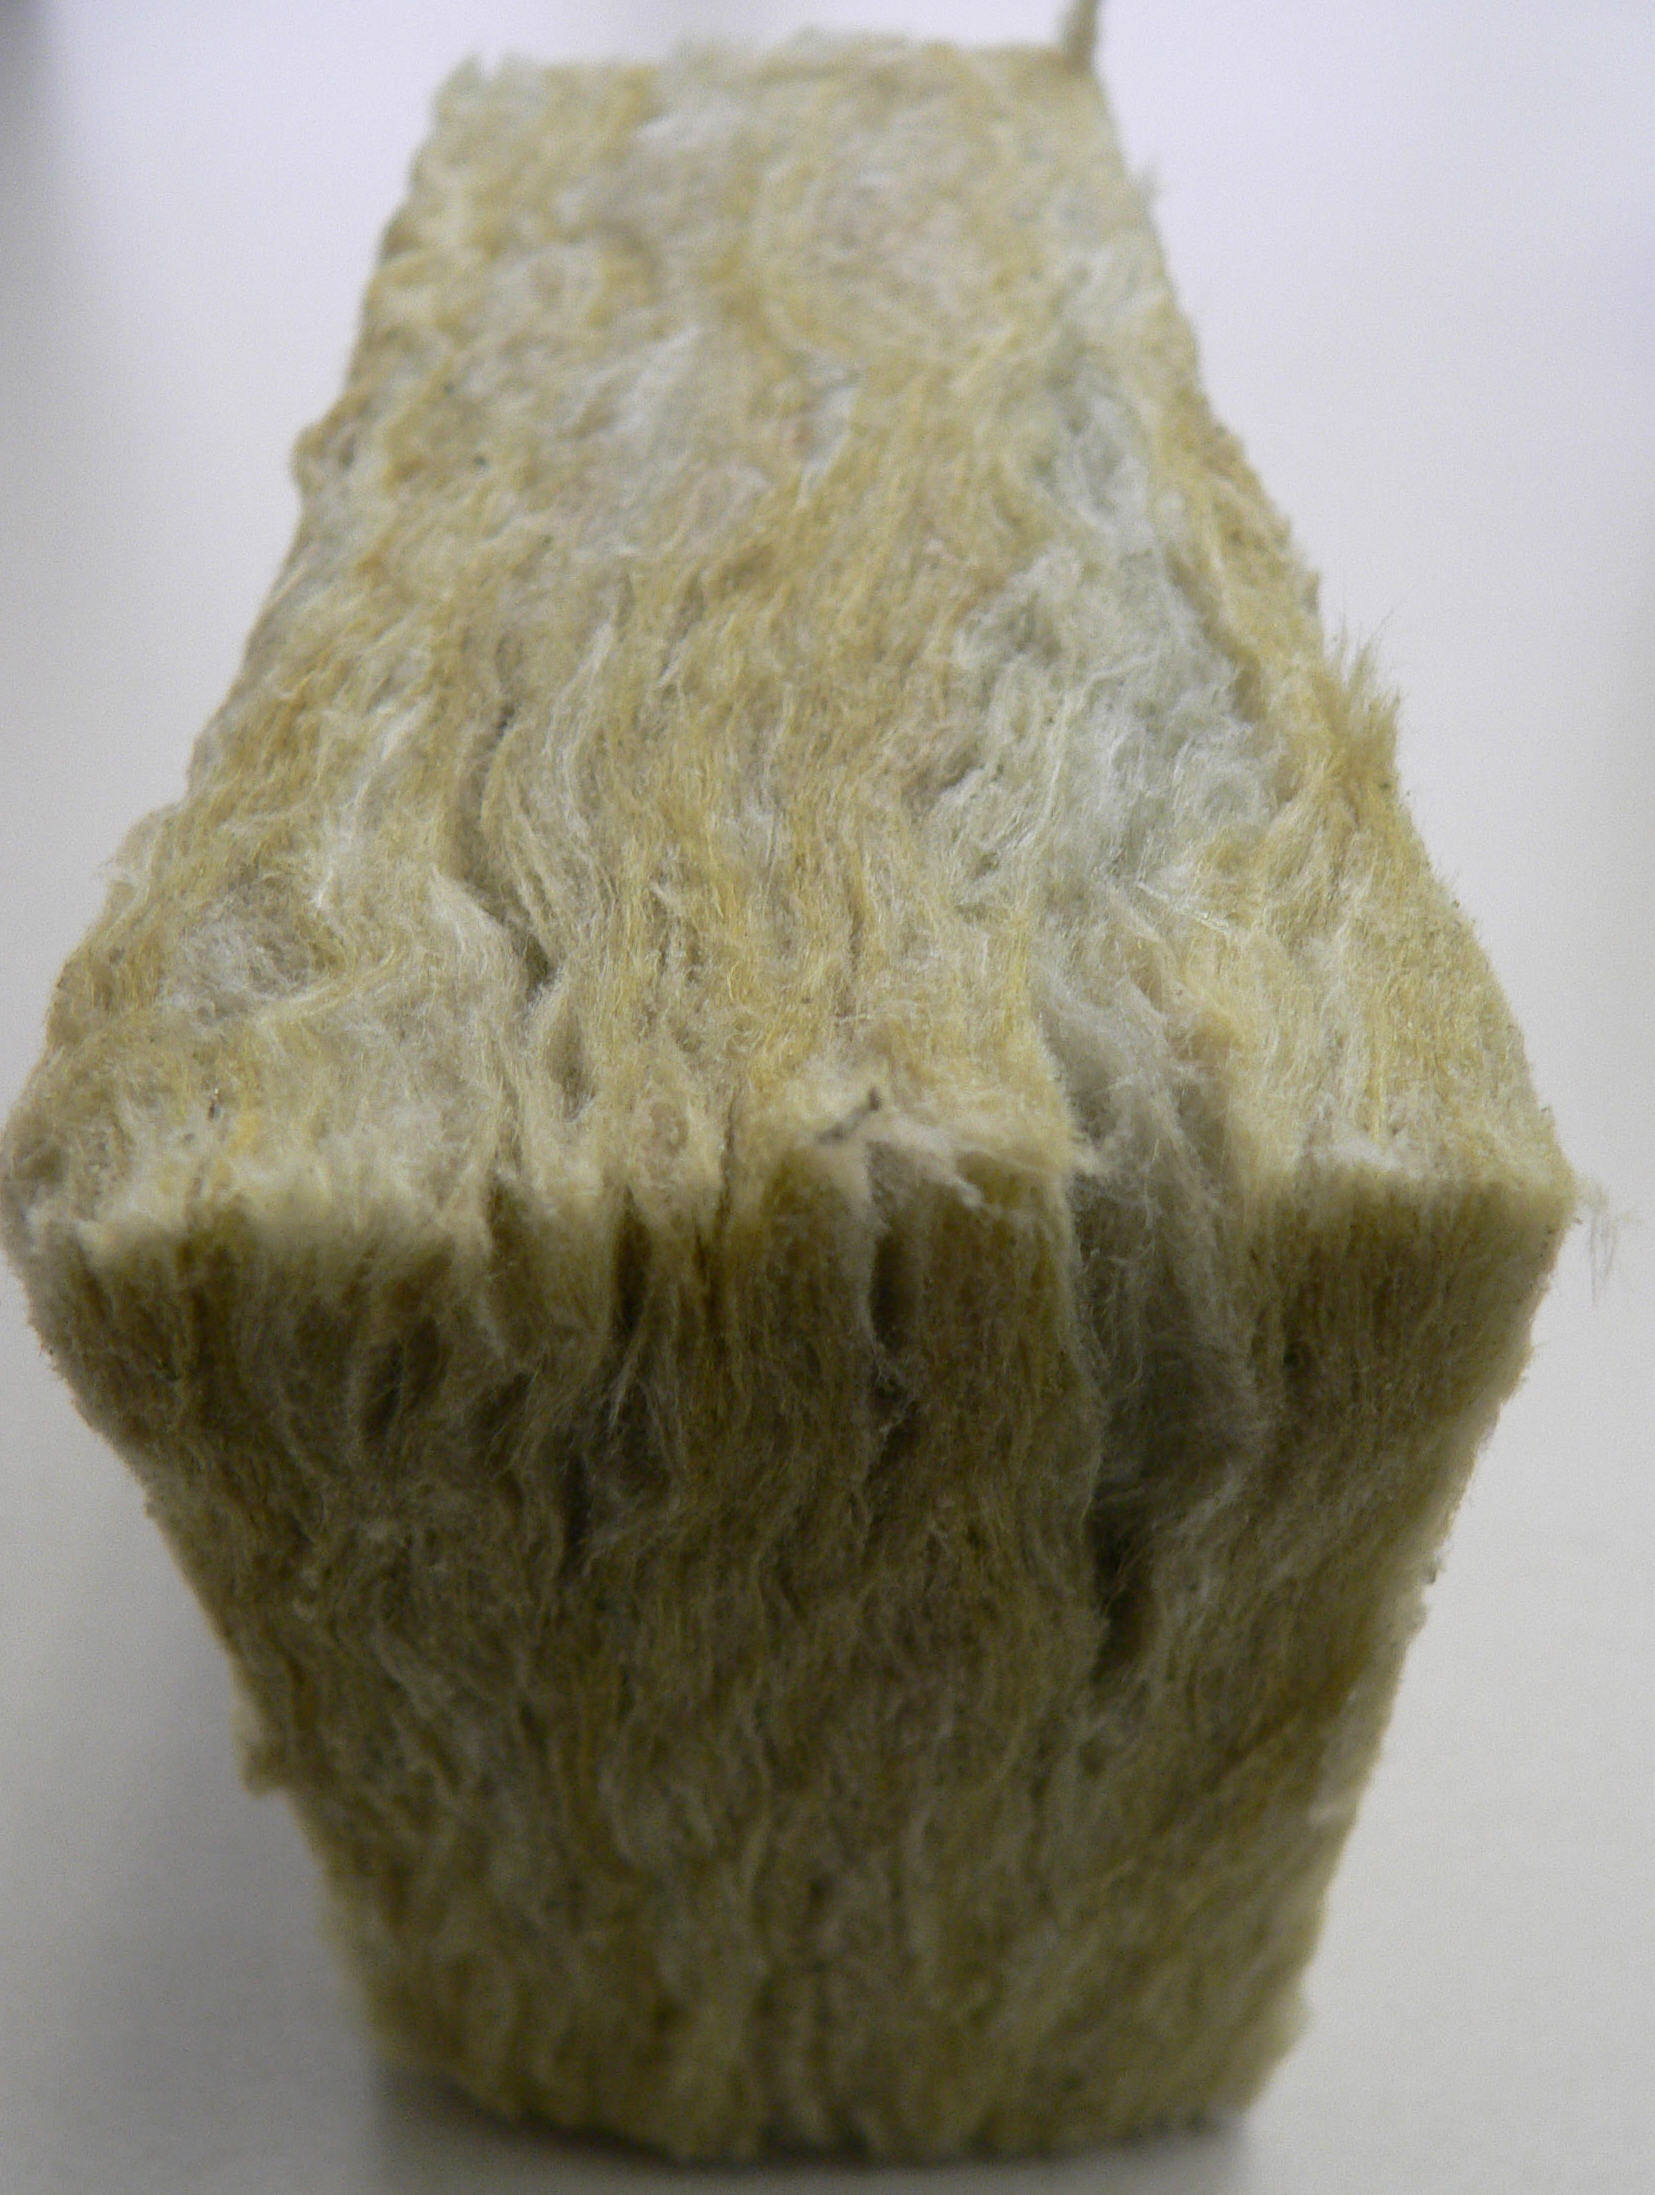 File rockwool 4lbs per ft3 wikimedia commons for 3 mineral wool insulation